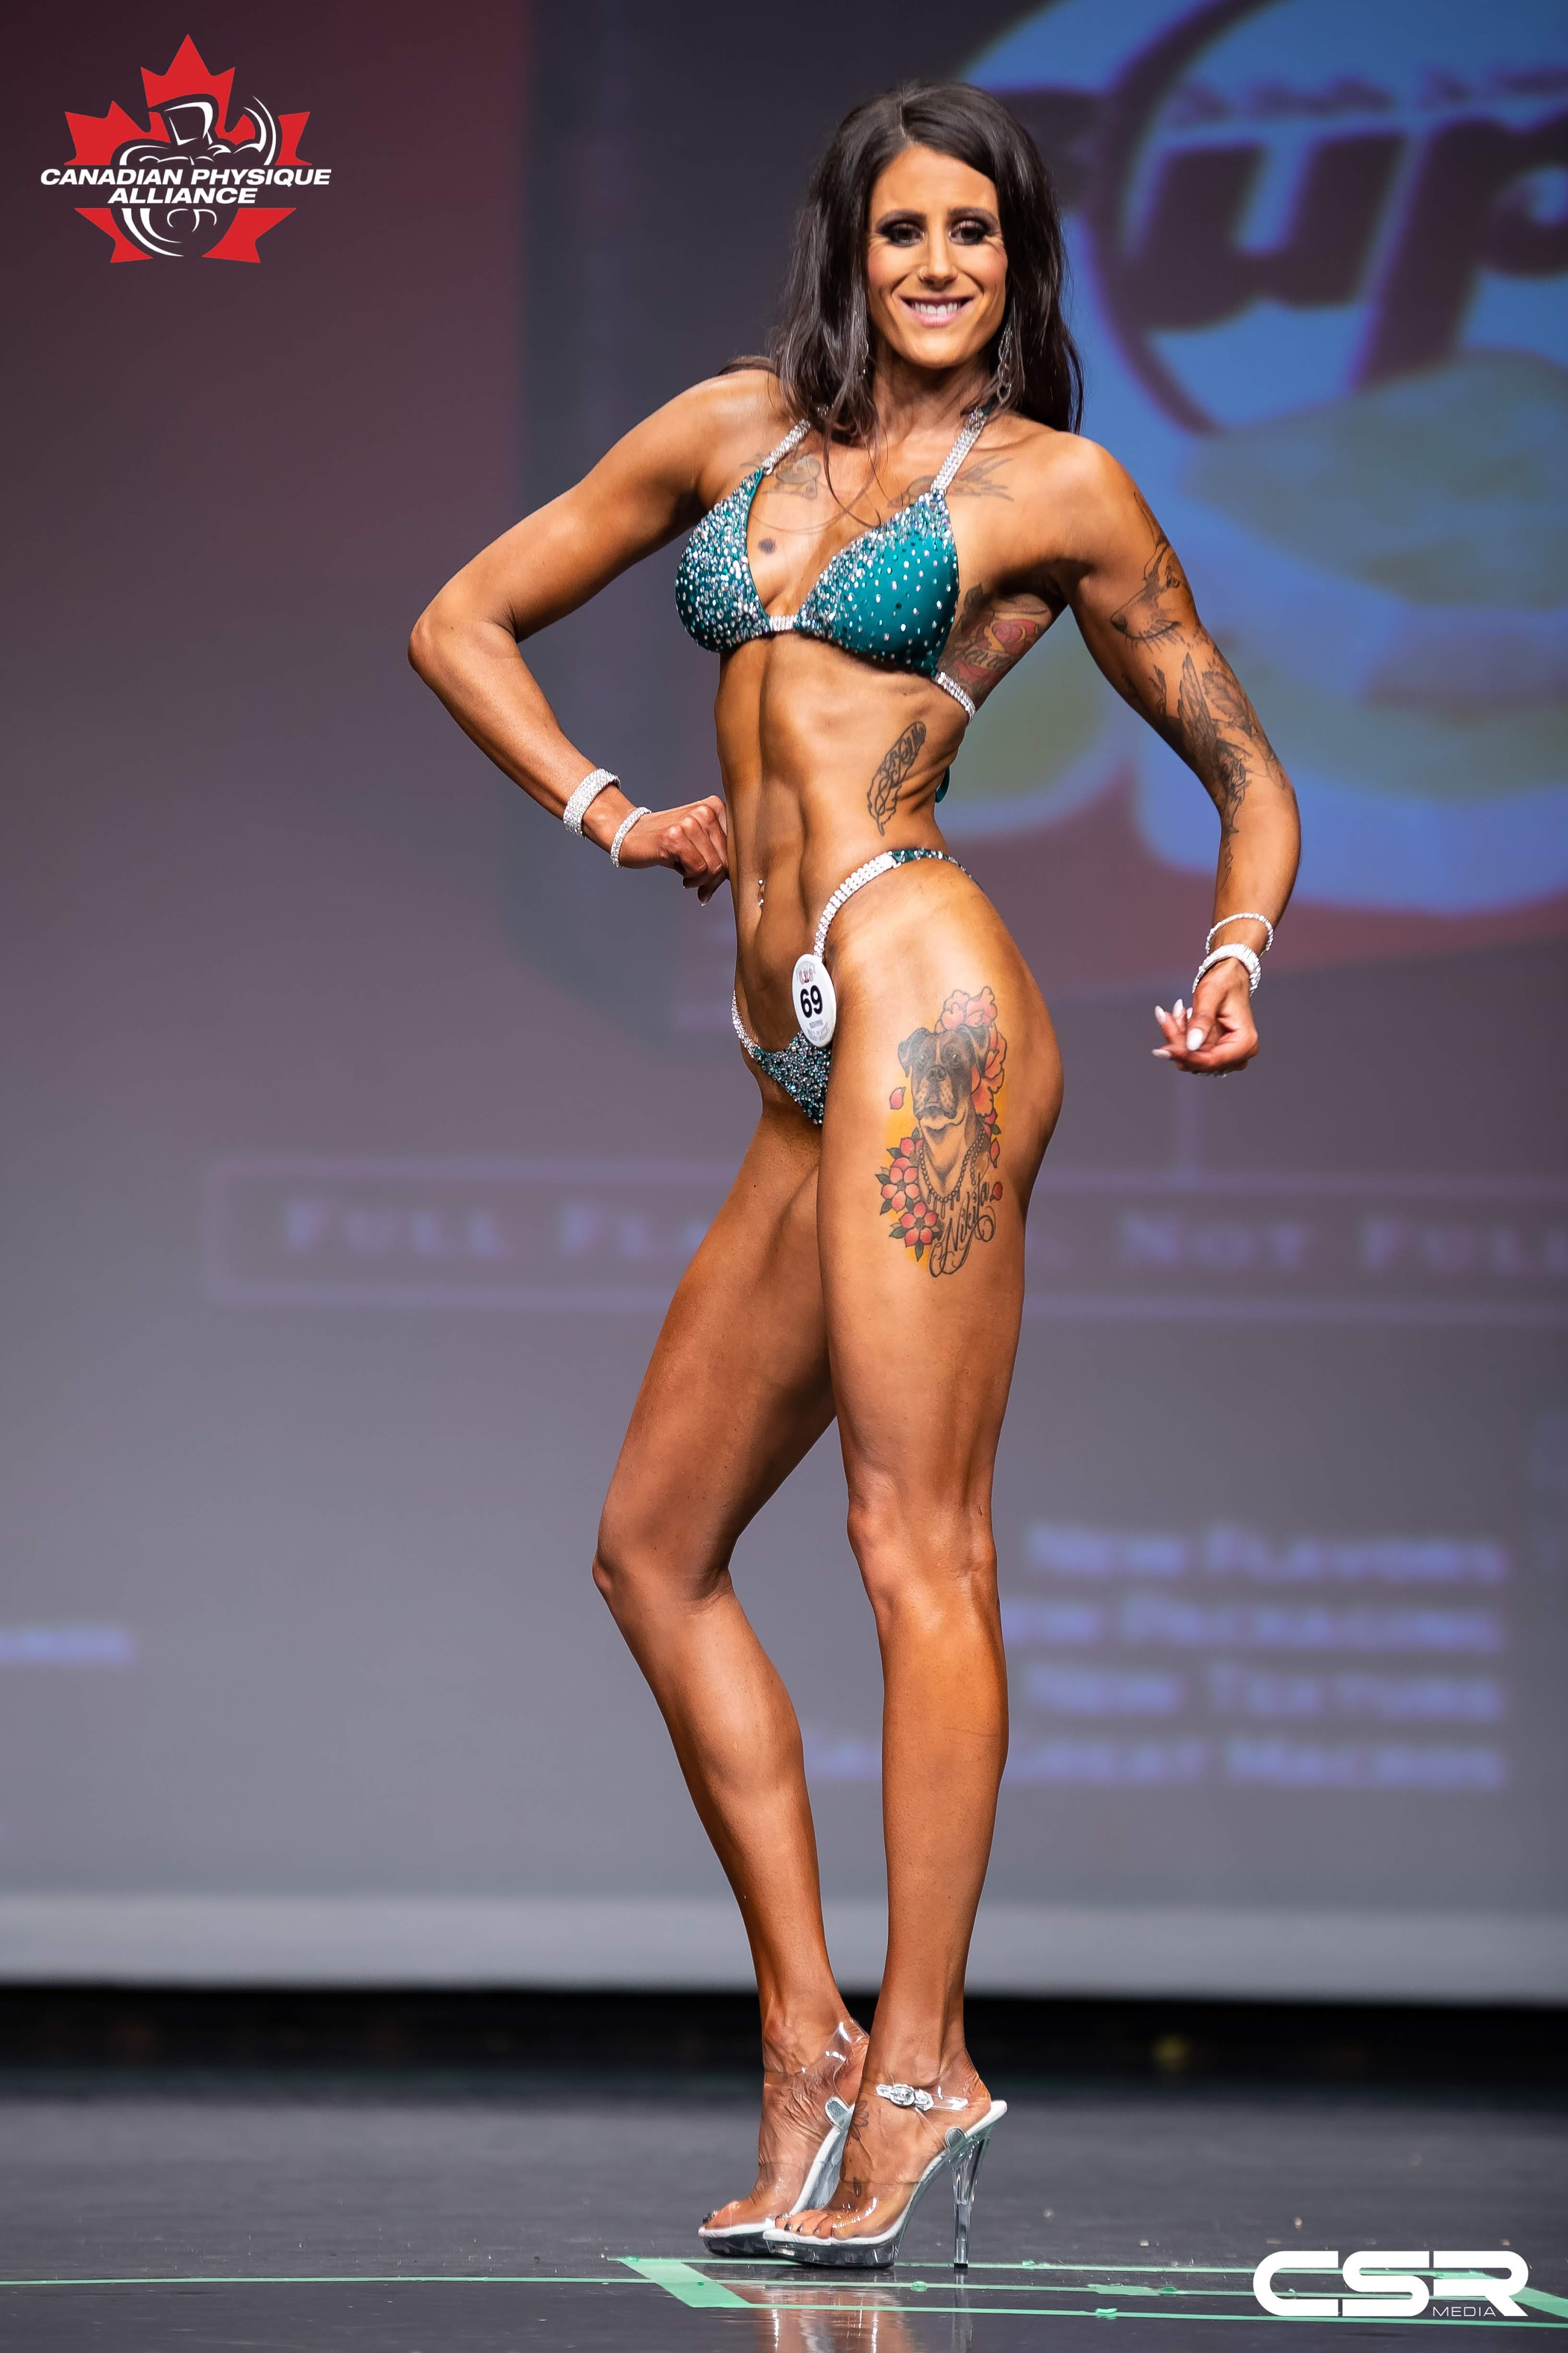 Stage shot from my first bodybuilding competition where I competed in he bikini division